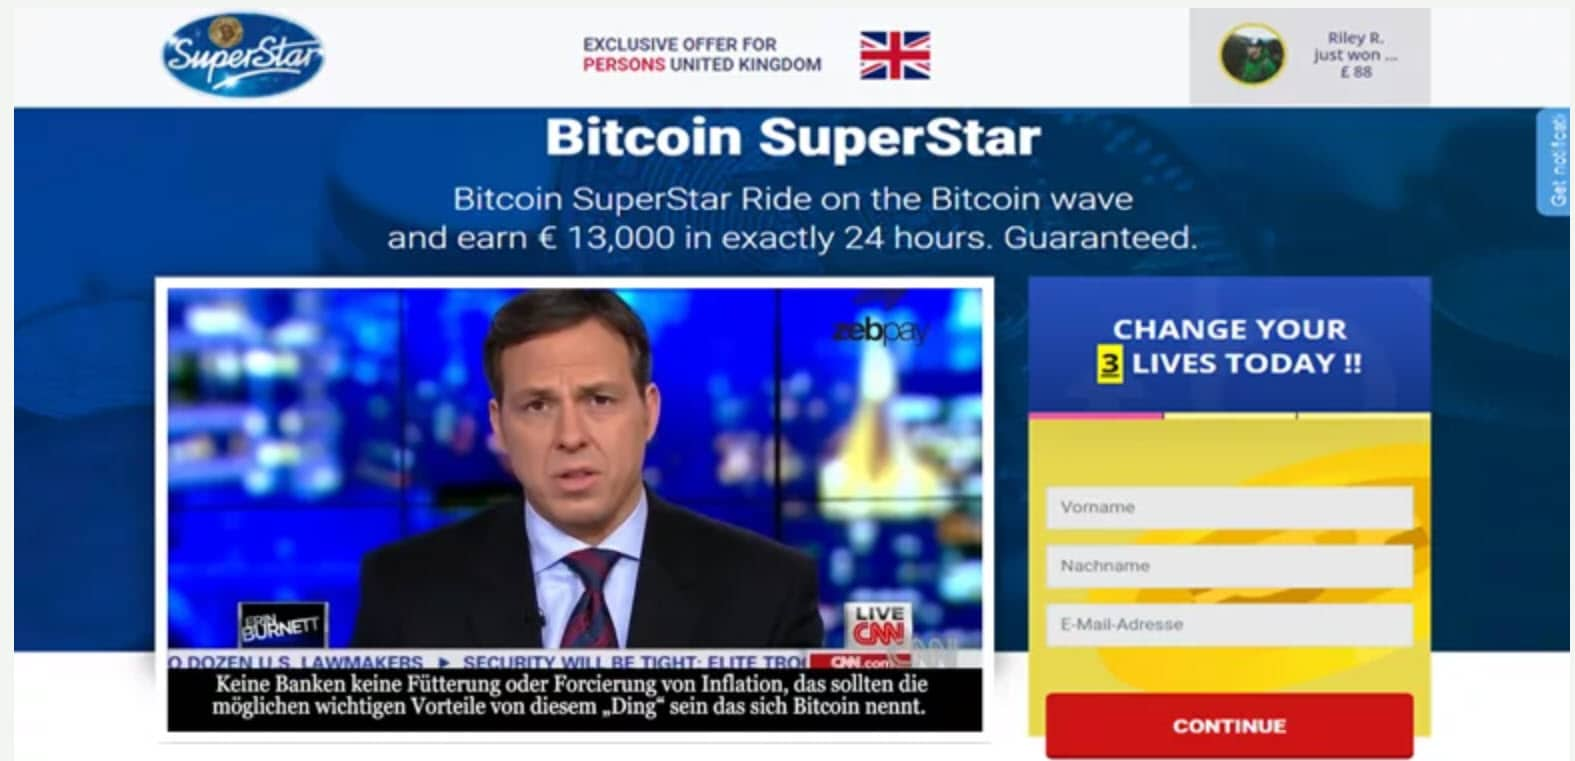 Bitcoin Superstar Is it scam?